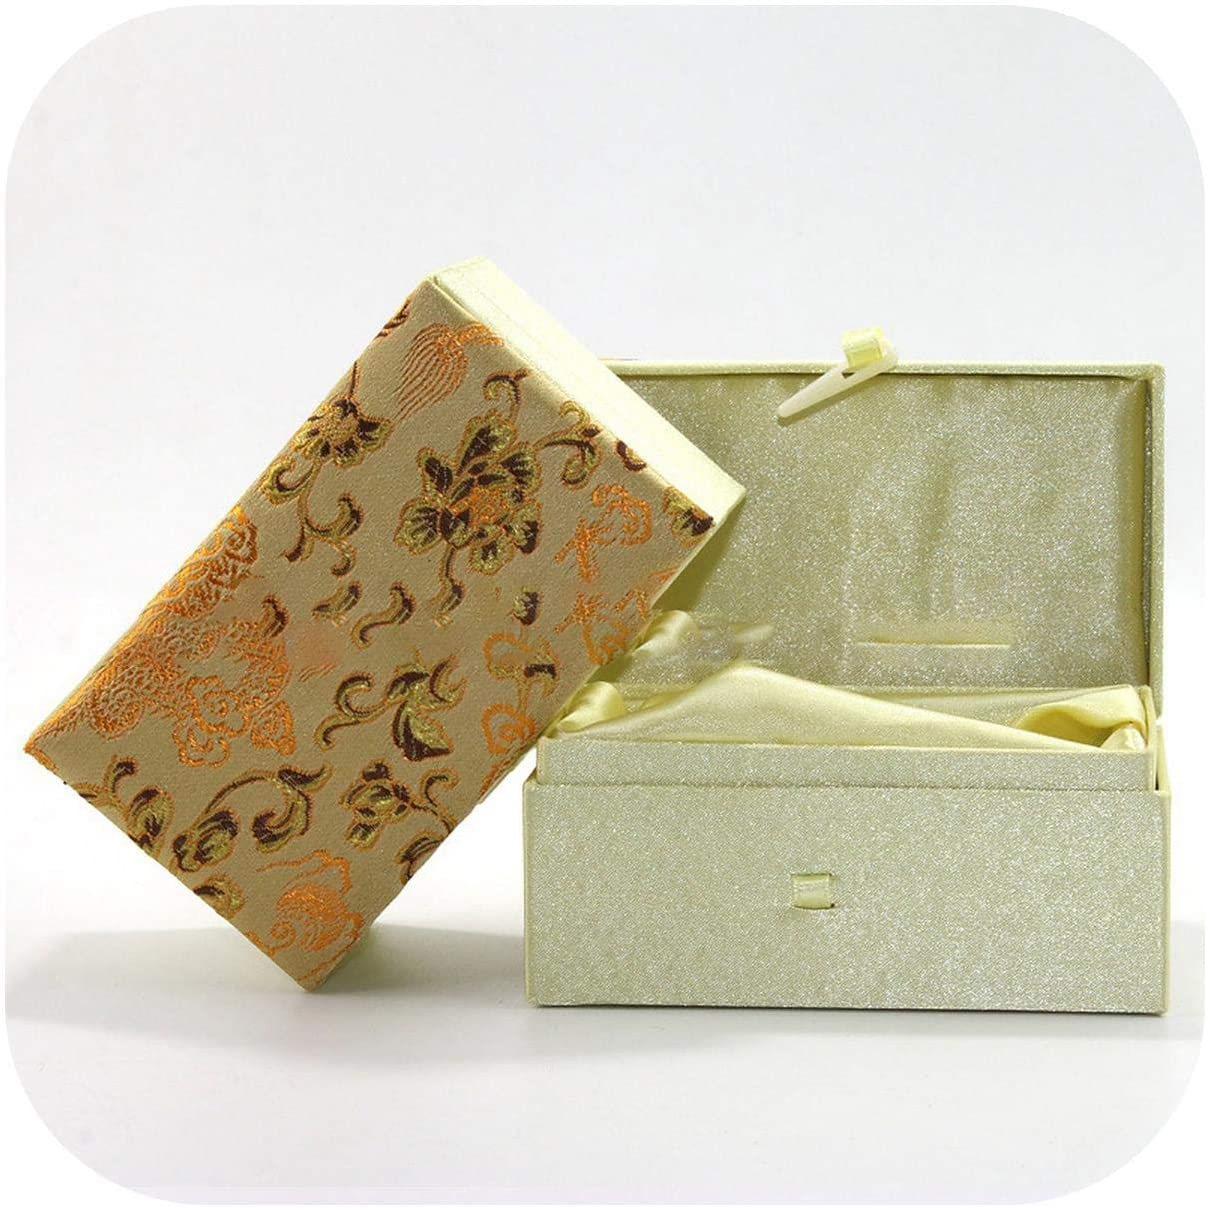 JingSe Jewelry Box 12.576.5 Gift Packaging Brocade Box Made Handle Pieces Wenwan Walnut Box-Lacquer Dragon-12.576.5Cm